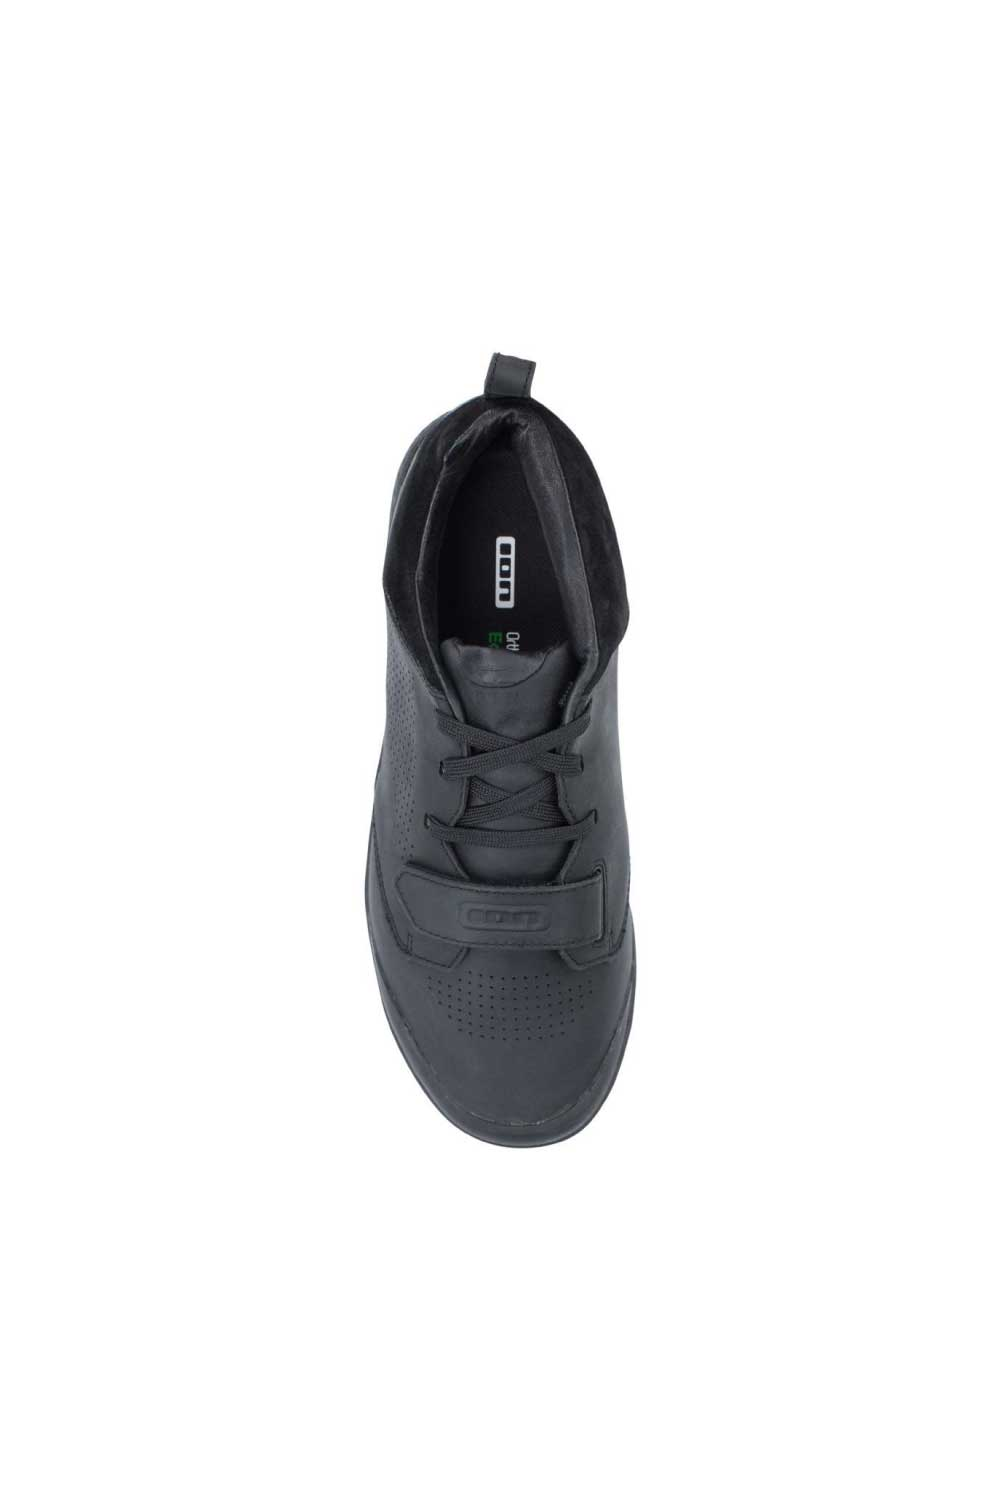 ION Scrub Select MTB Flat Shoes